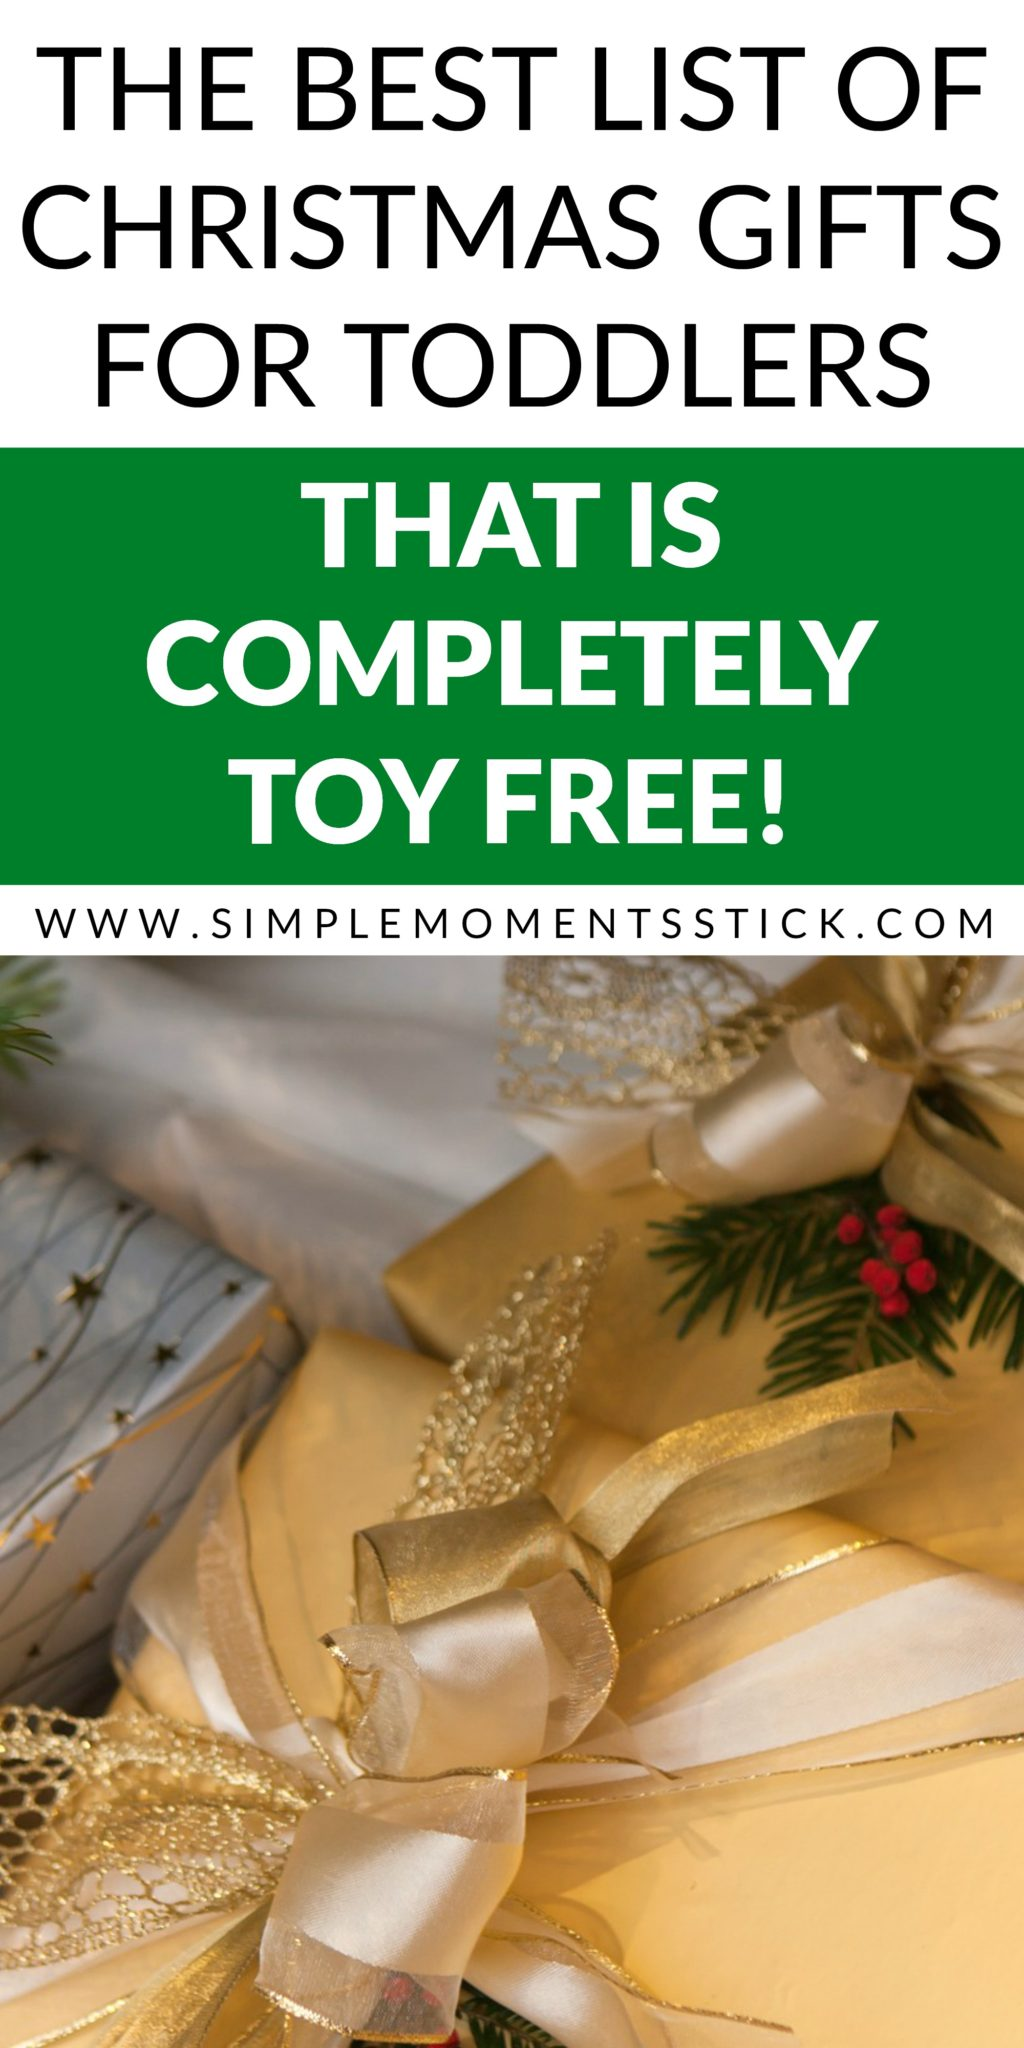 Great gift ideas for toddlers who have everything